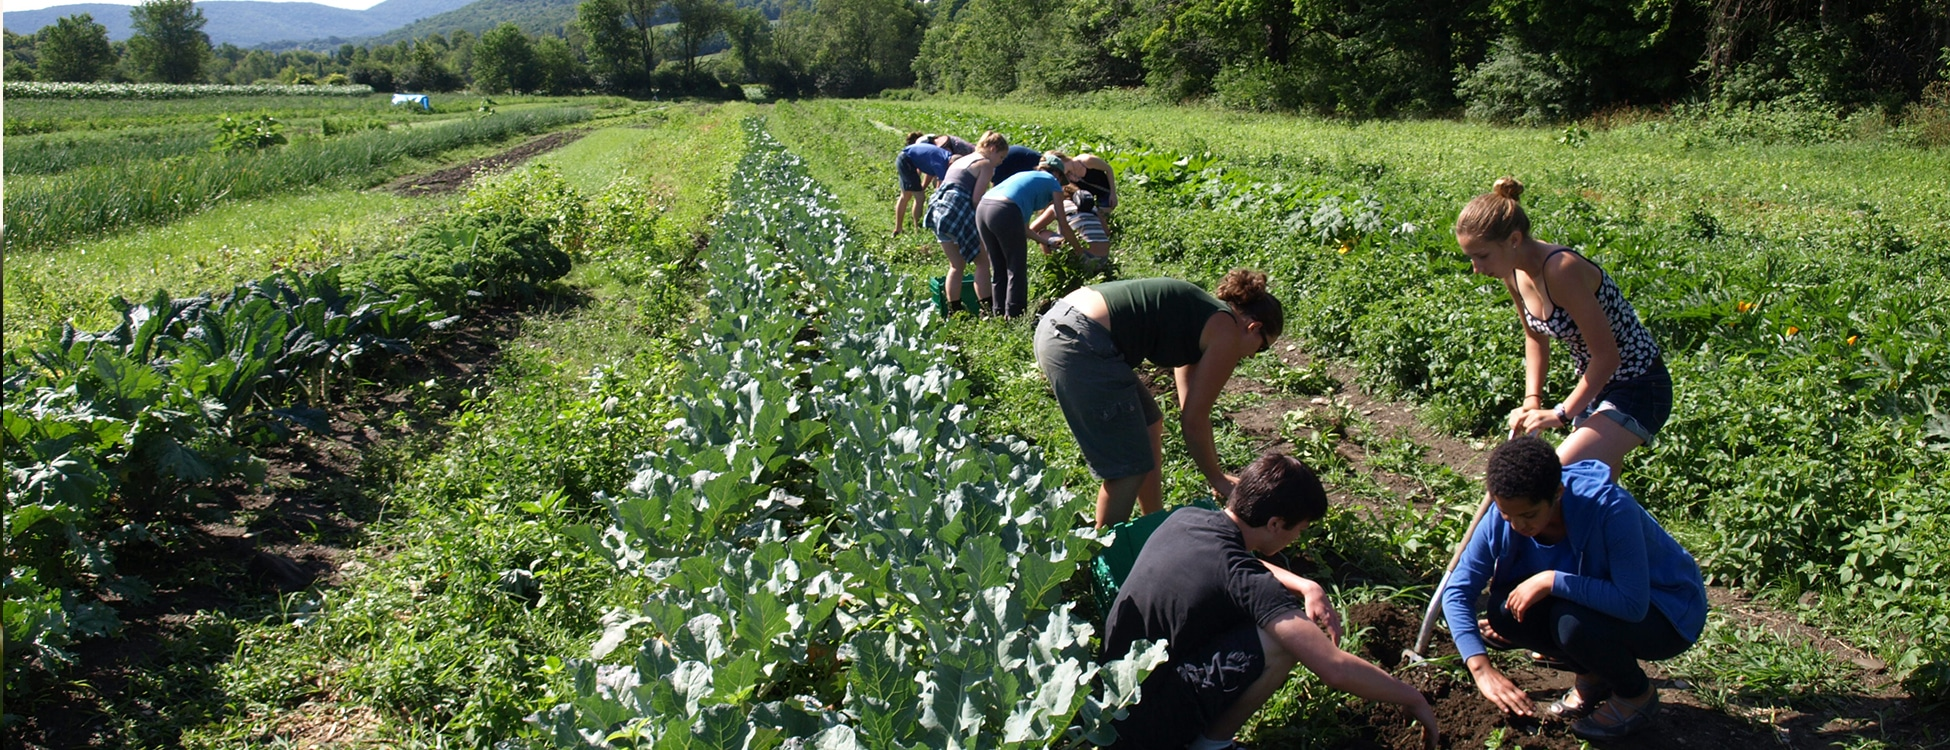 Students working in a garden, Randolph Center Campus